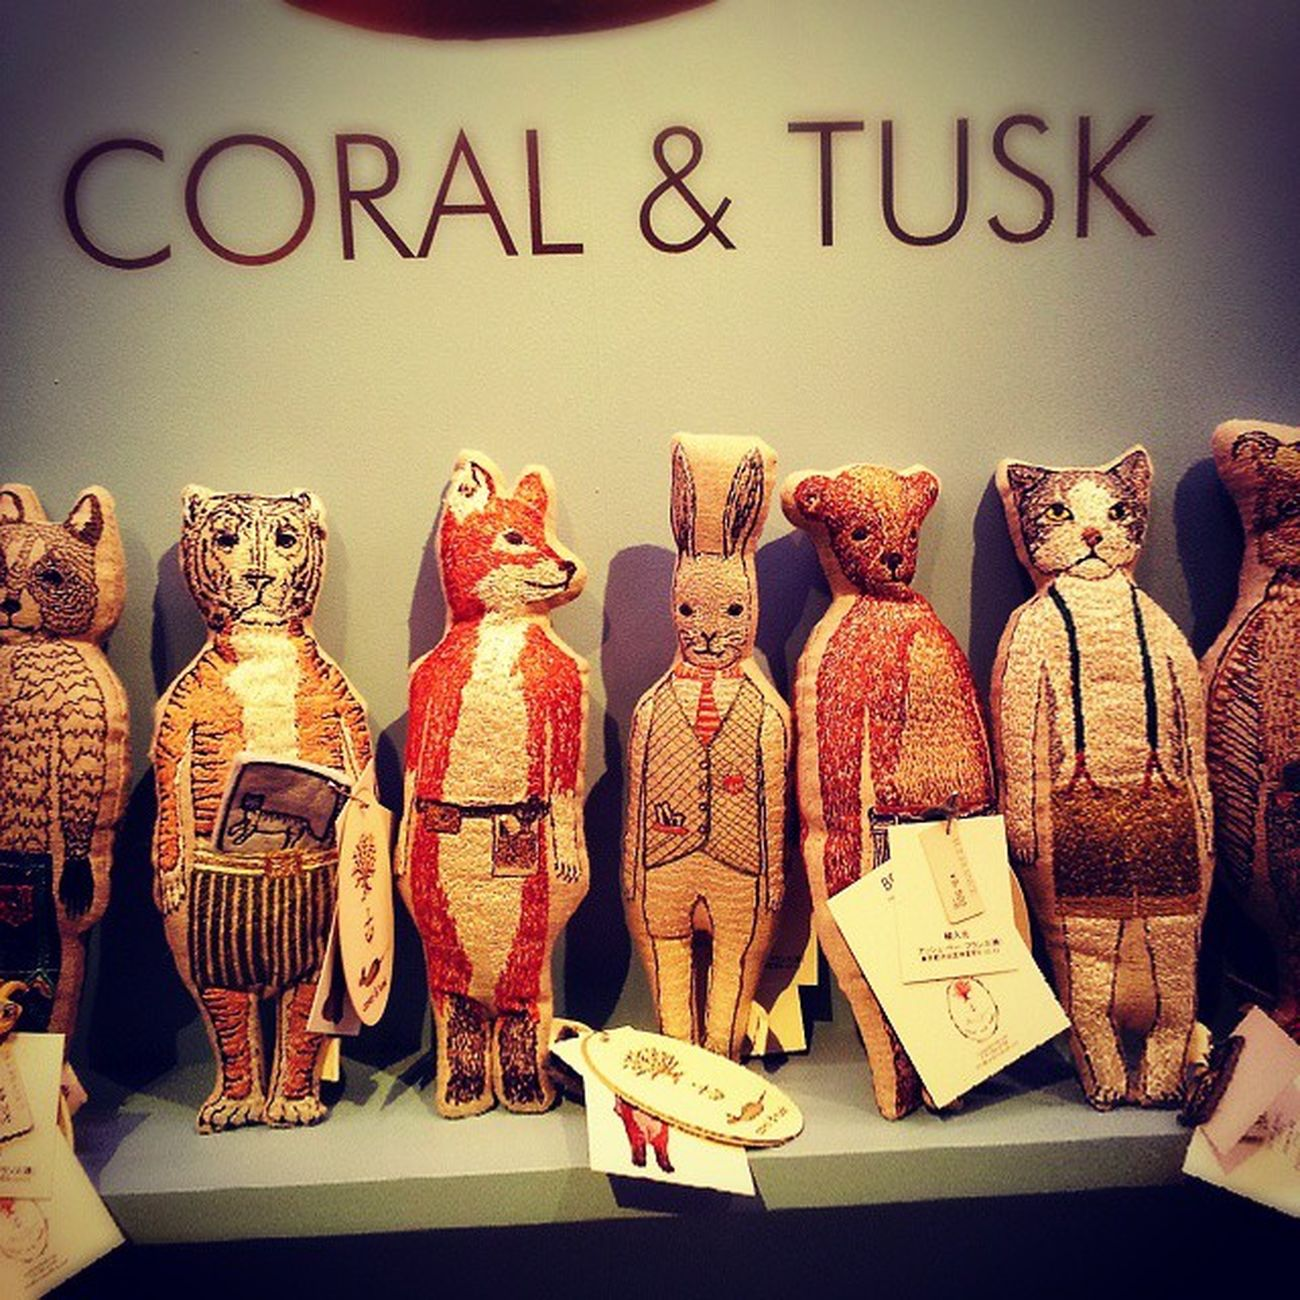 Sooooo cute! CORAL&TUSK pop-up shop@代官山蔦谷書店 代官山 Interior Coralandtusk Cute myfavorite daikanyama tsutaya tsite embroidery home decor